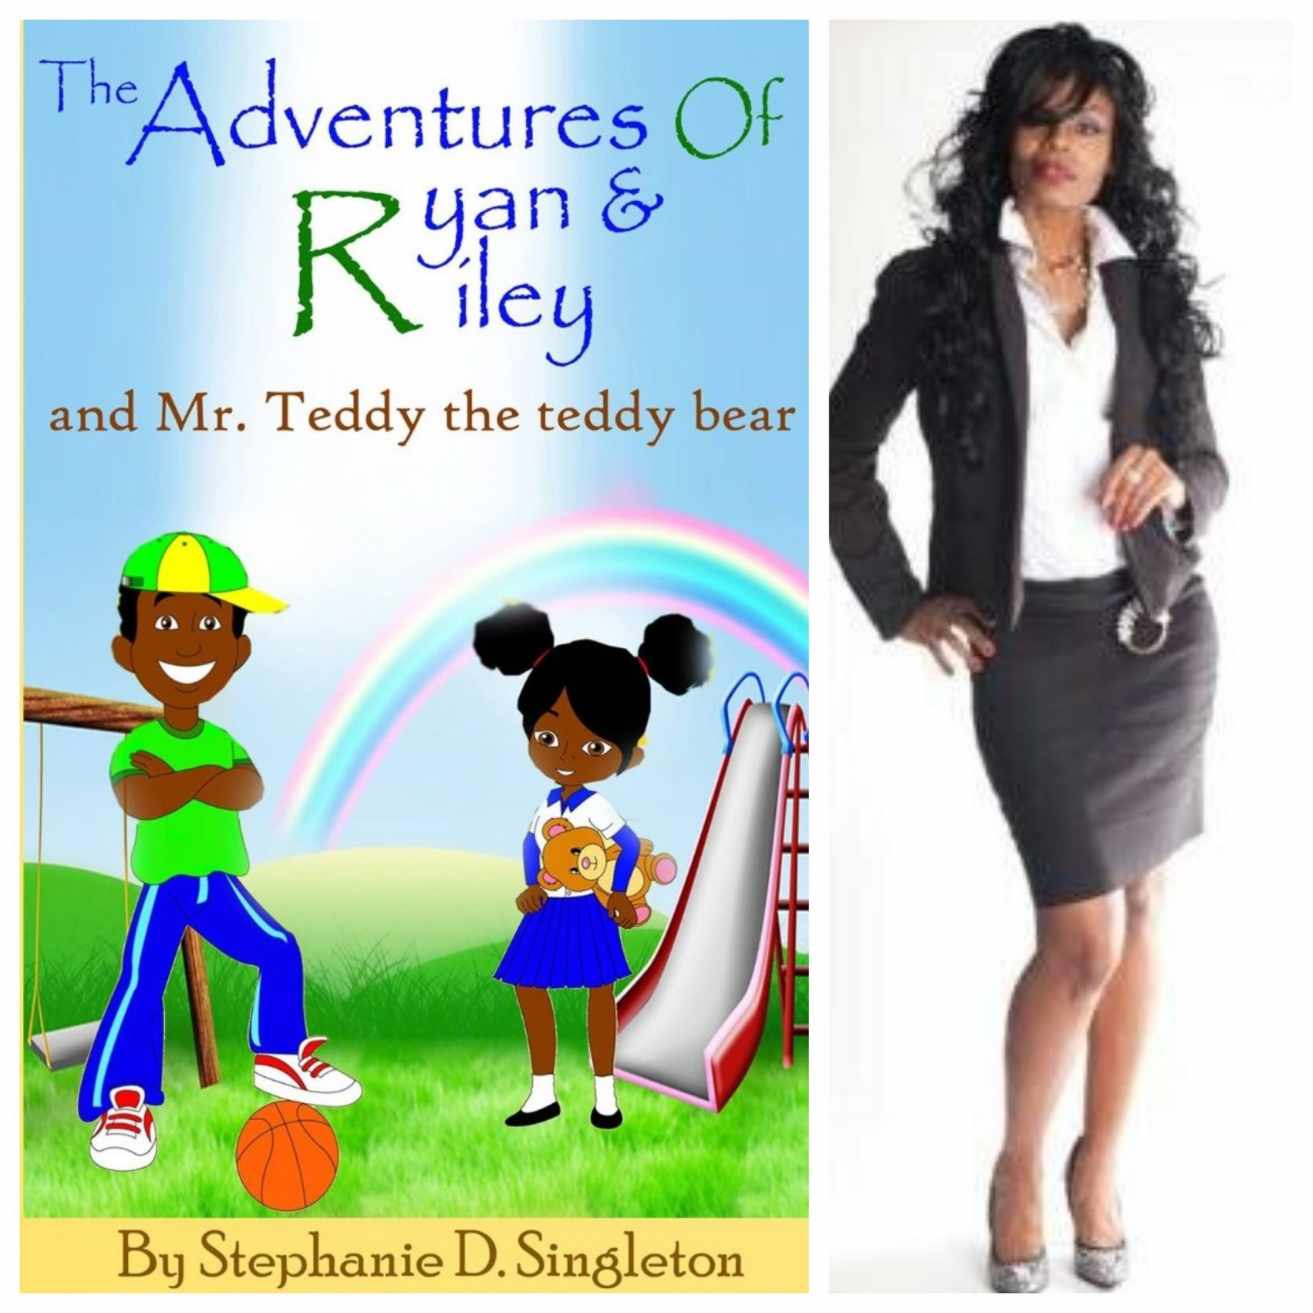 Author Stephanie Singleton